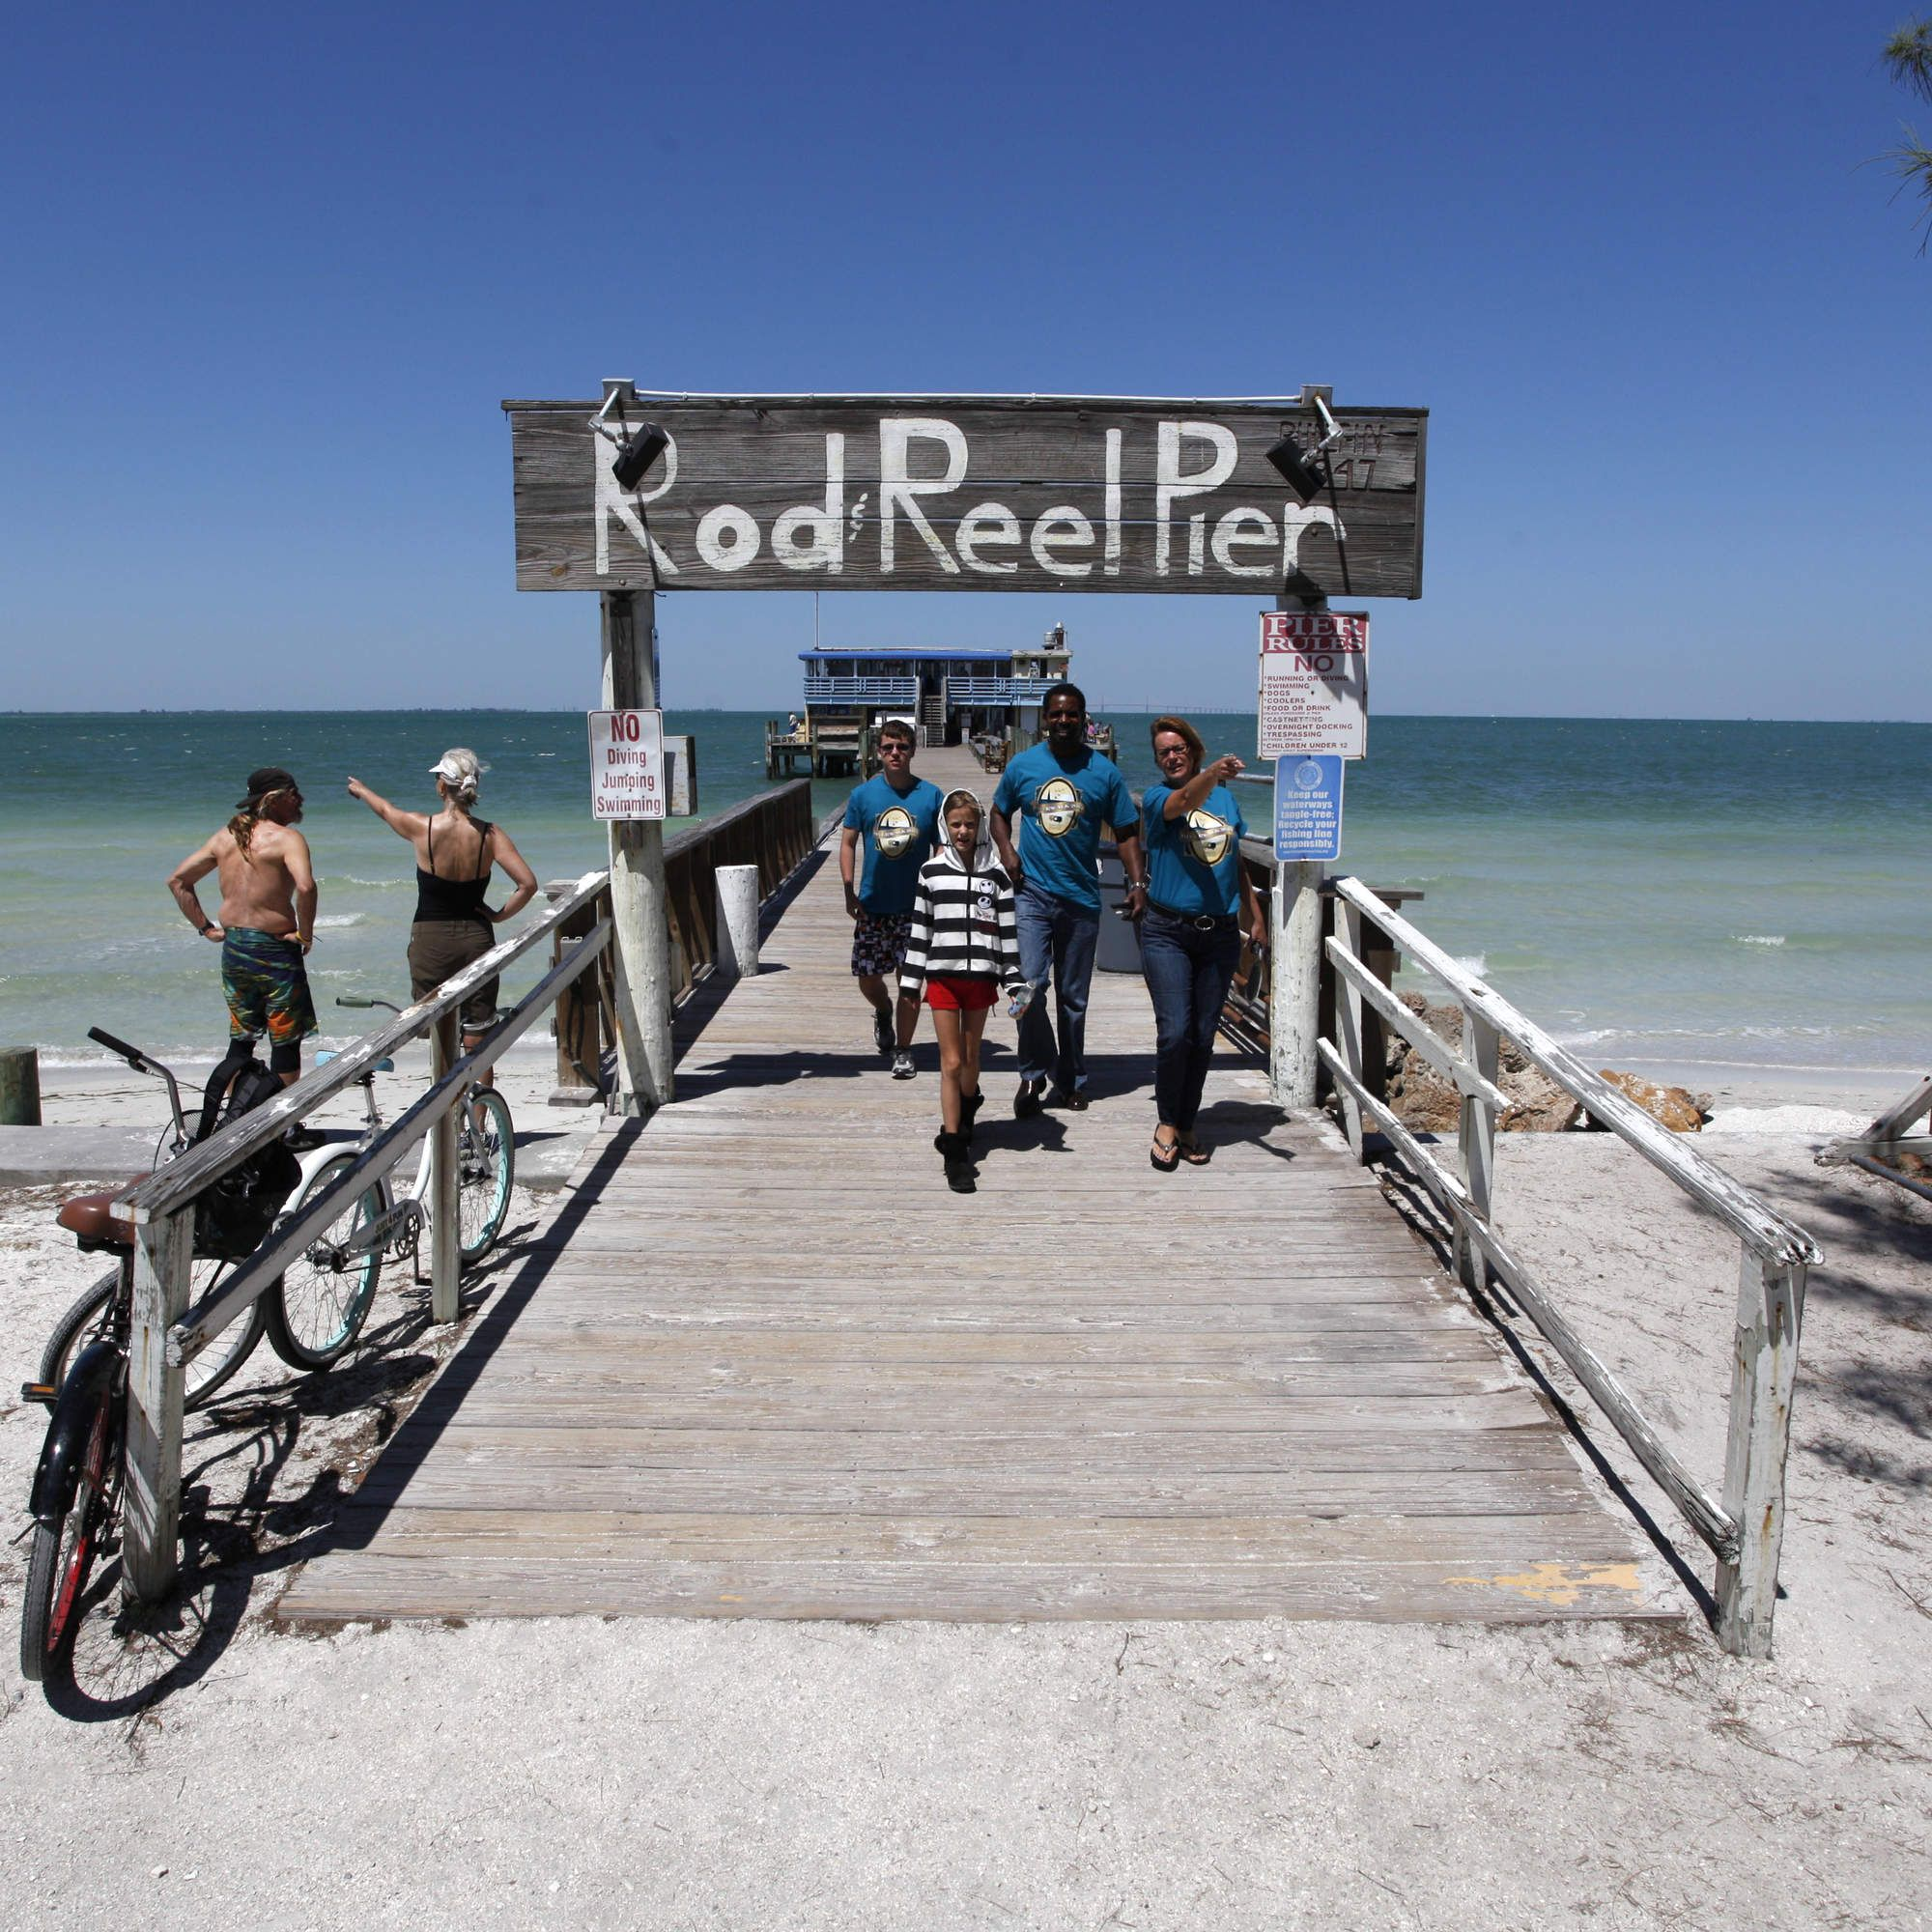 Four Florida Gulf Coast Towns You Absolutely Have To Visit Gulf Coast Florida Florida West Coast Beaches Florida Gulf Coast Beaches